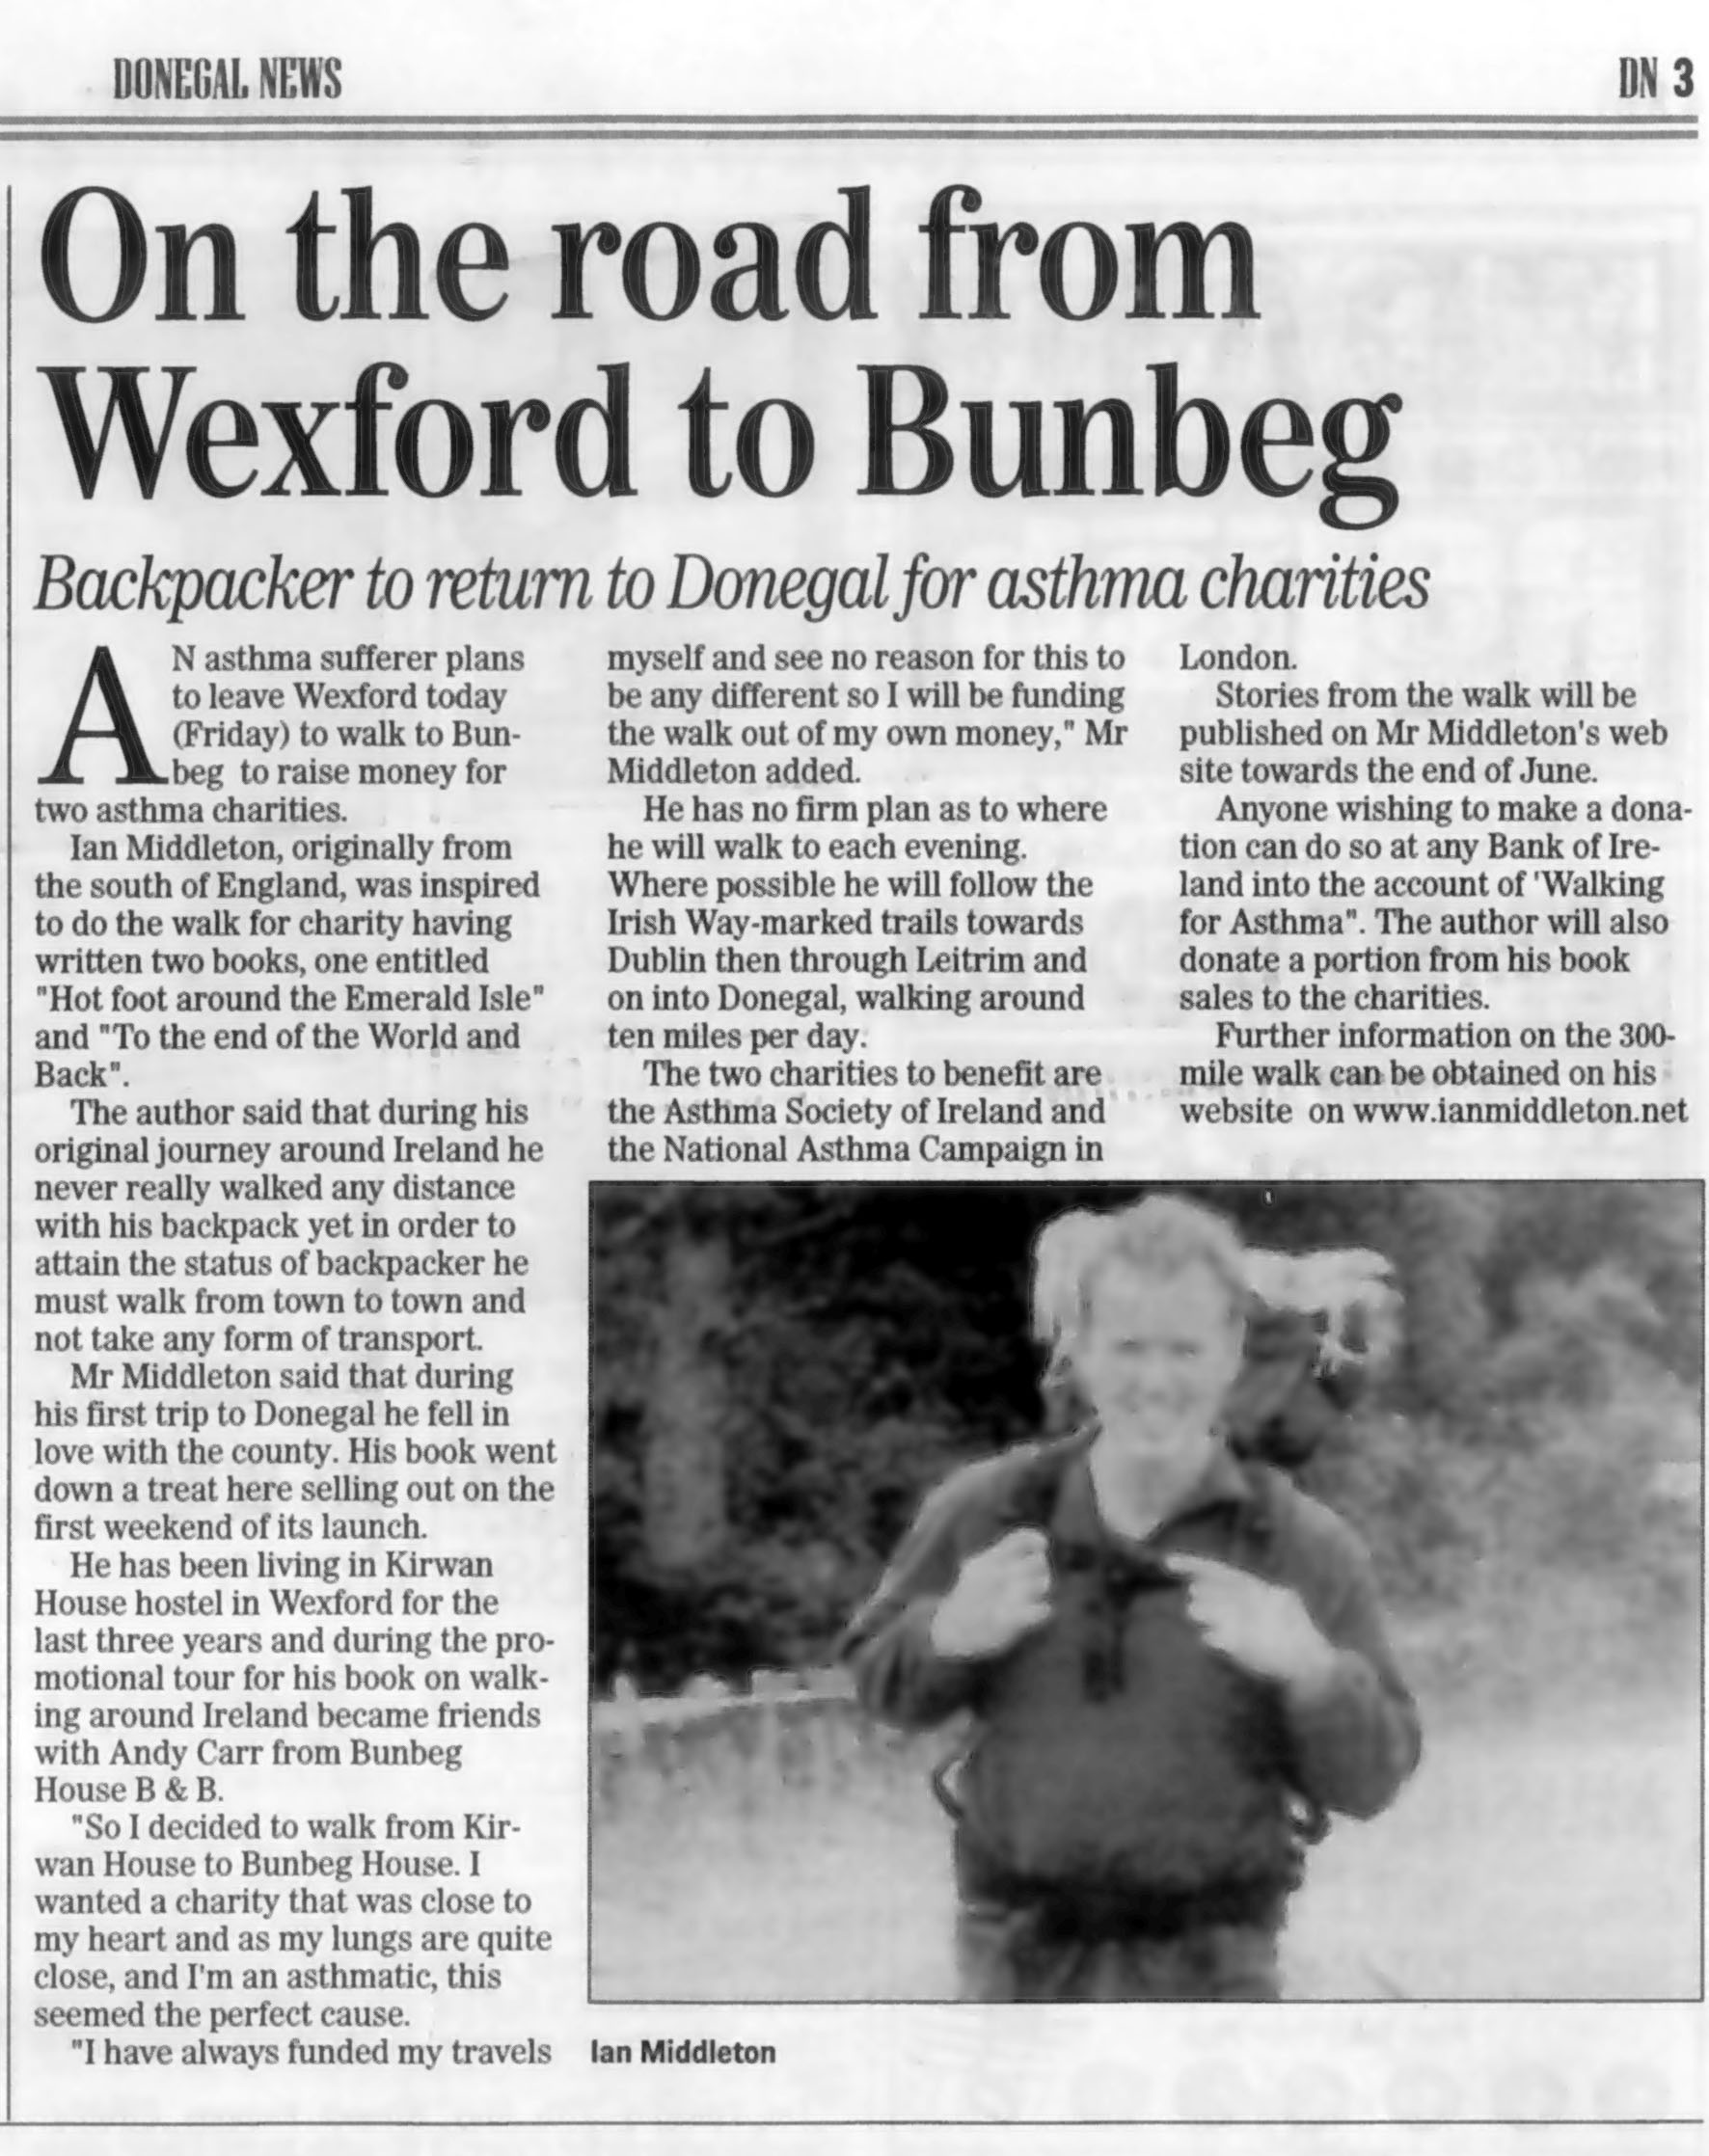 Article in the Donegal News about Ian Middleton's walk across Ireland for charity.